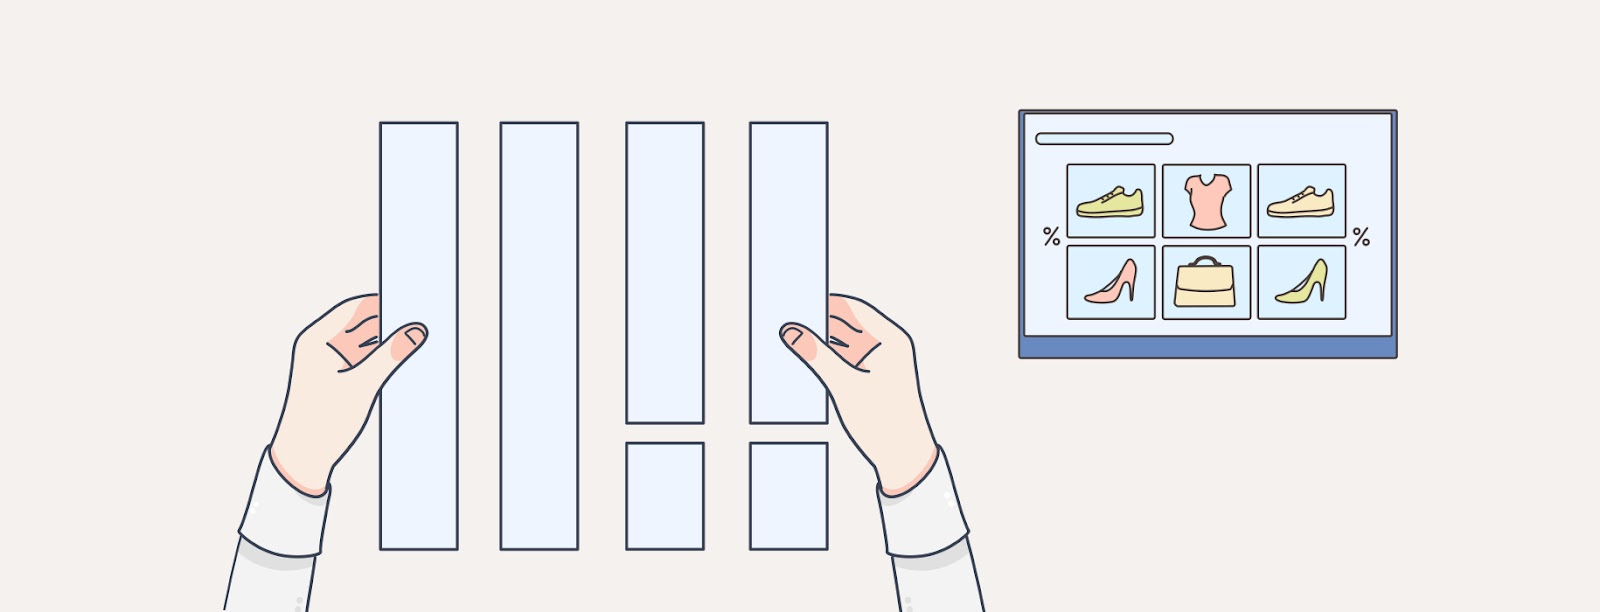 Illustration of hands organising the layout of web designs